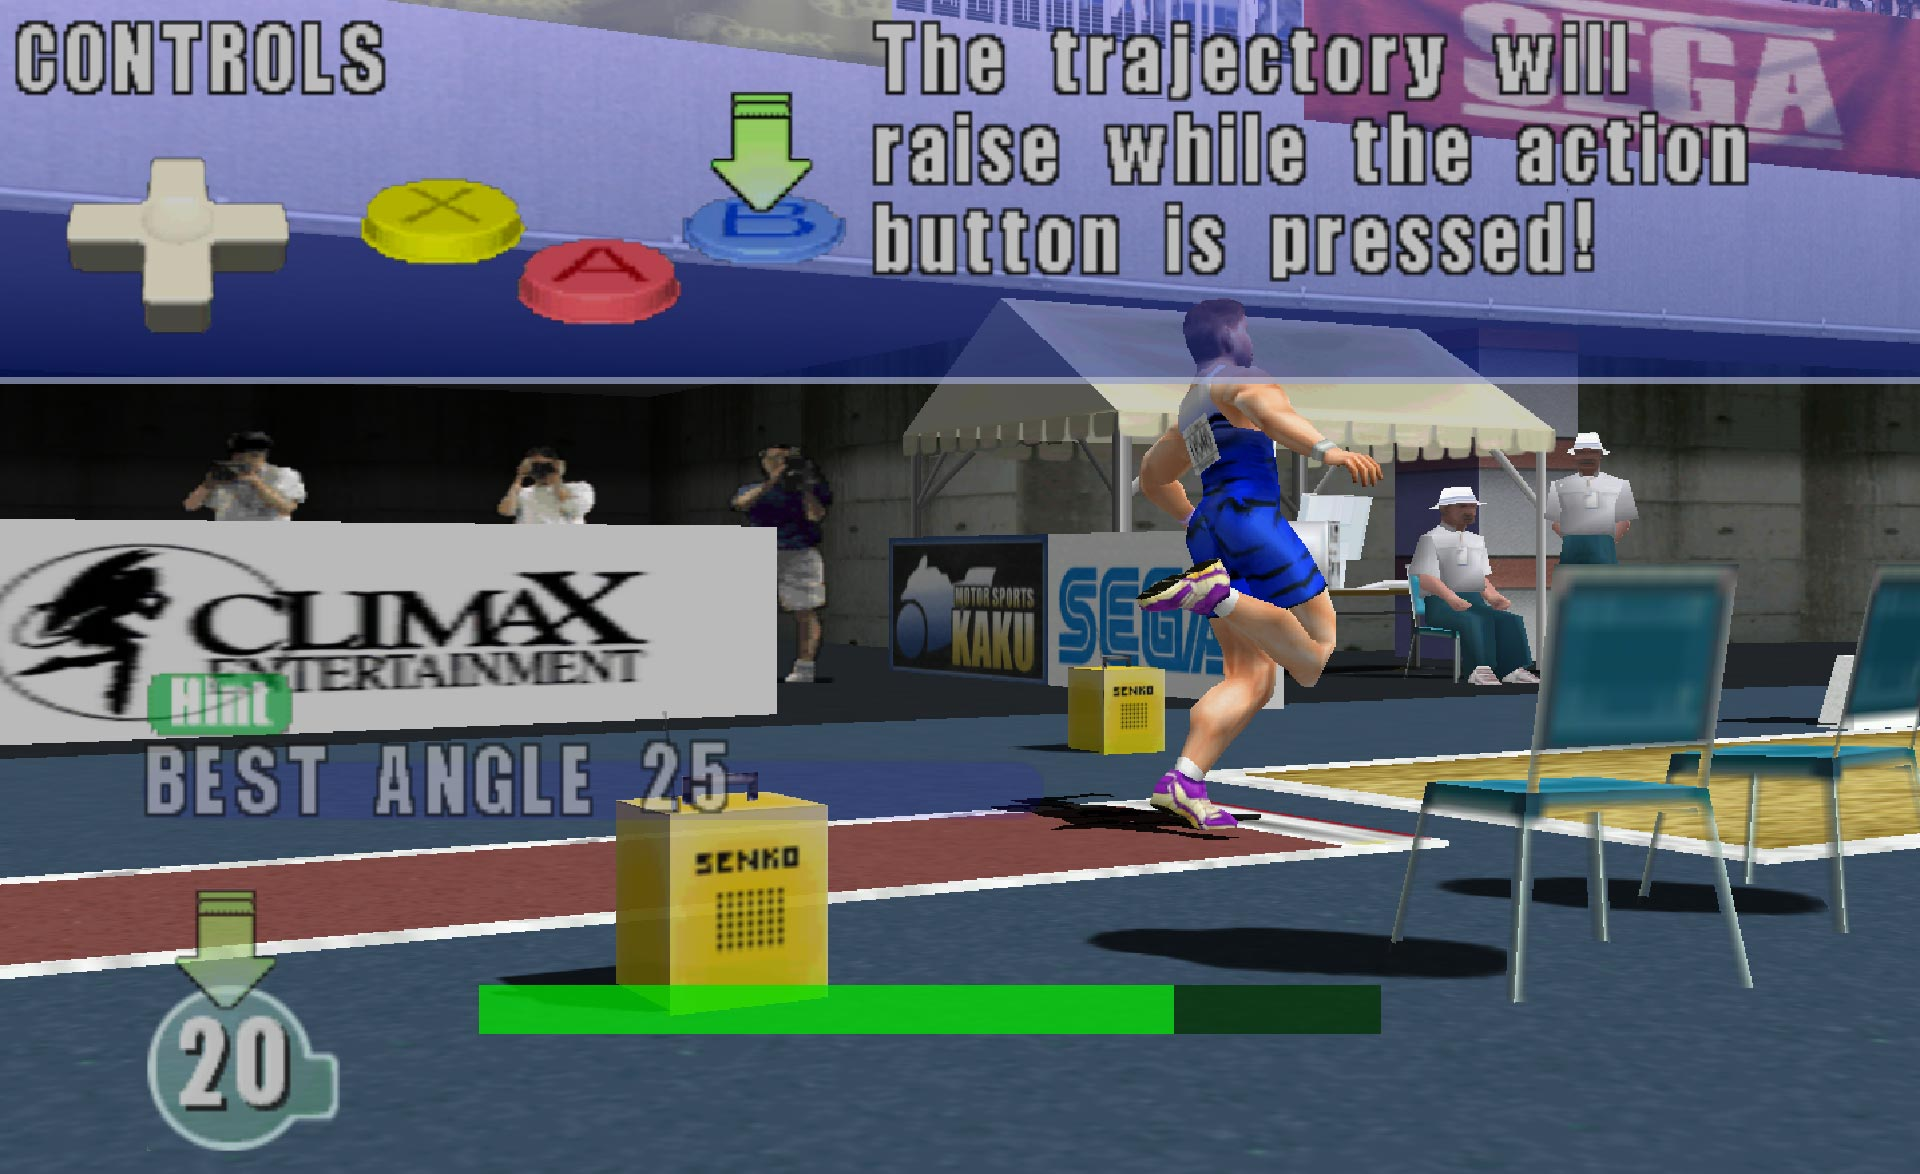 Virtua Athlete 2K tutorial